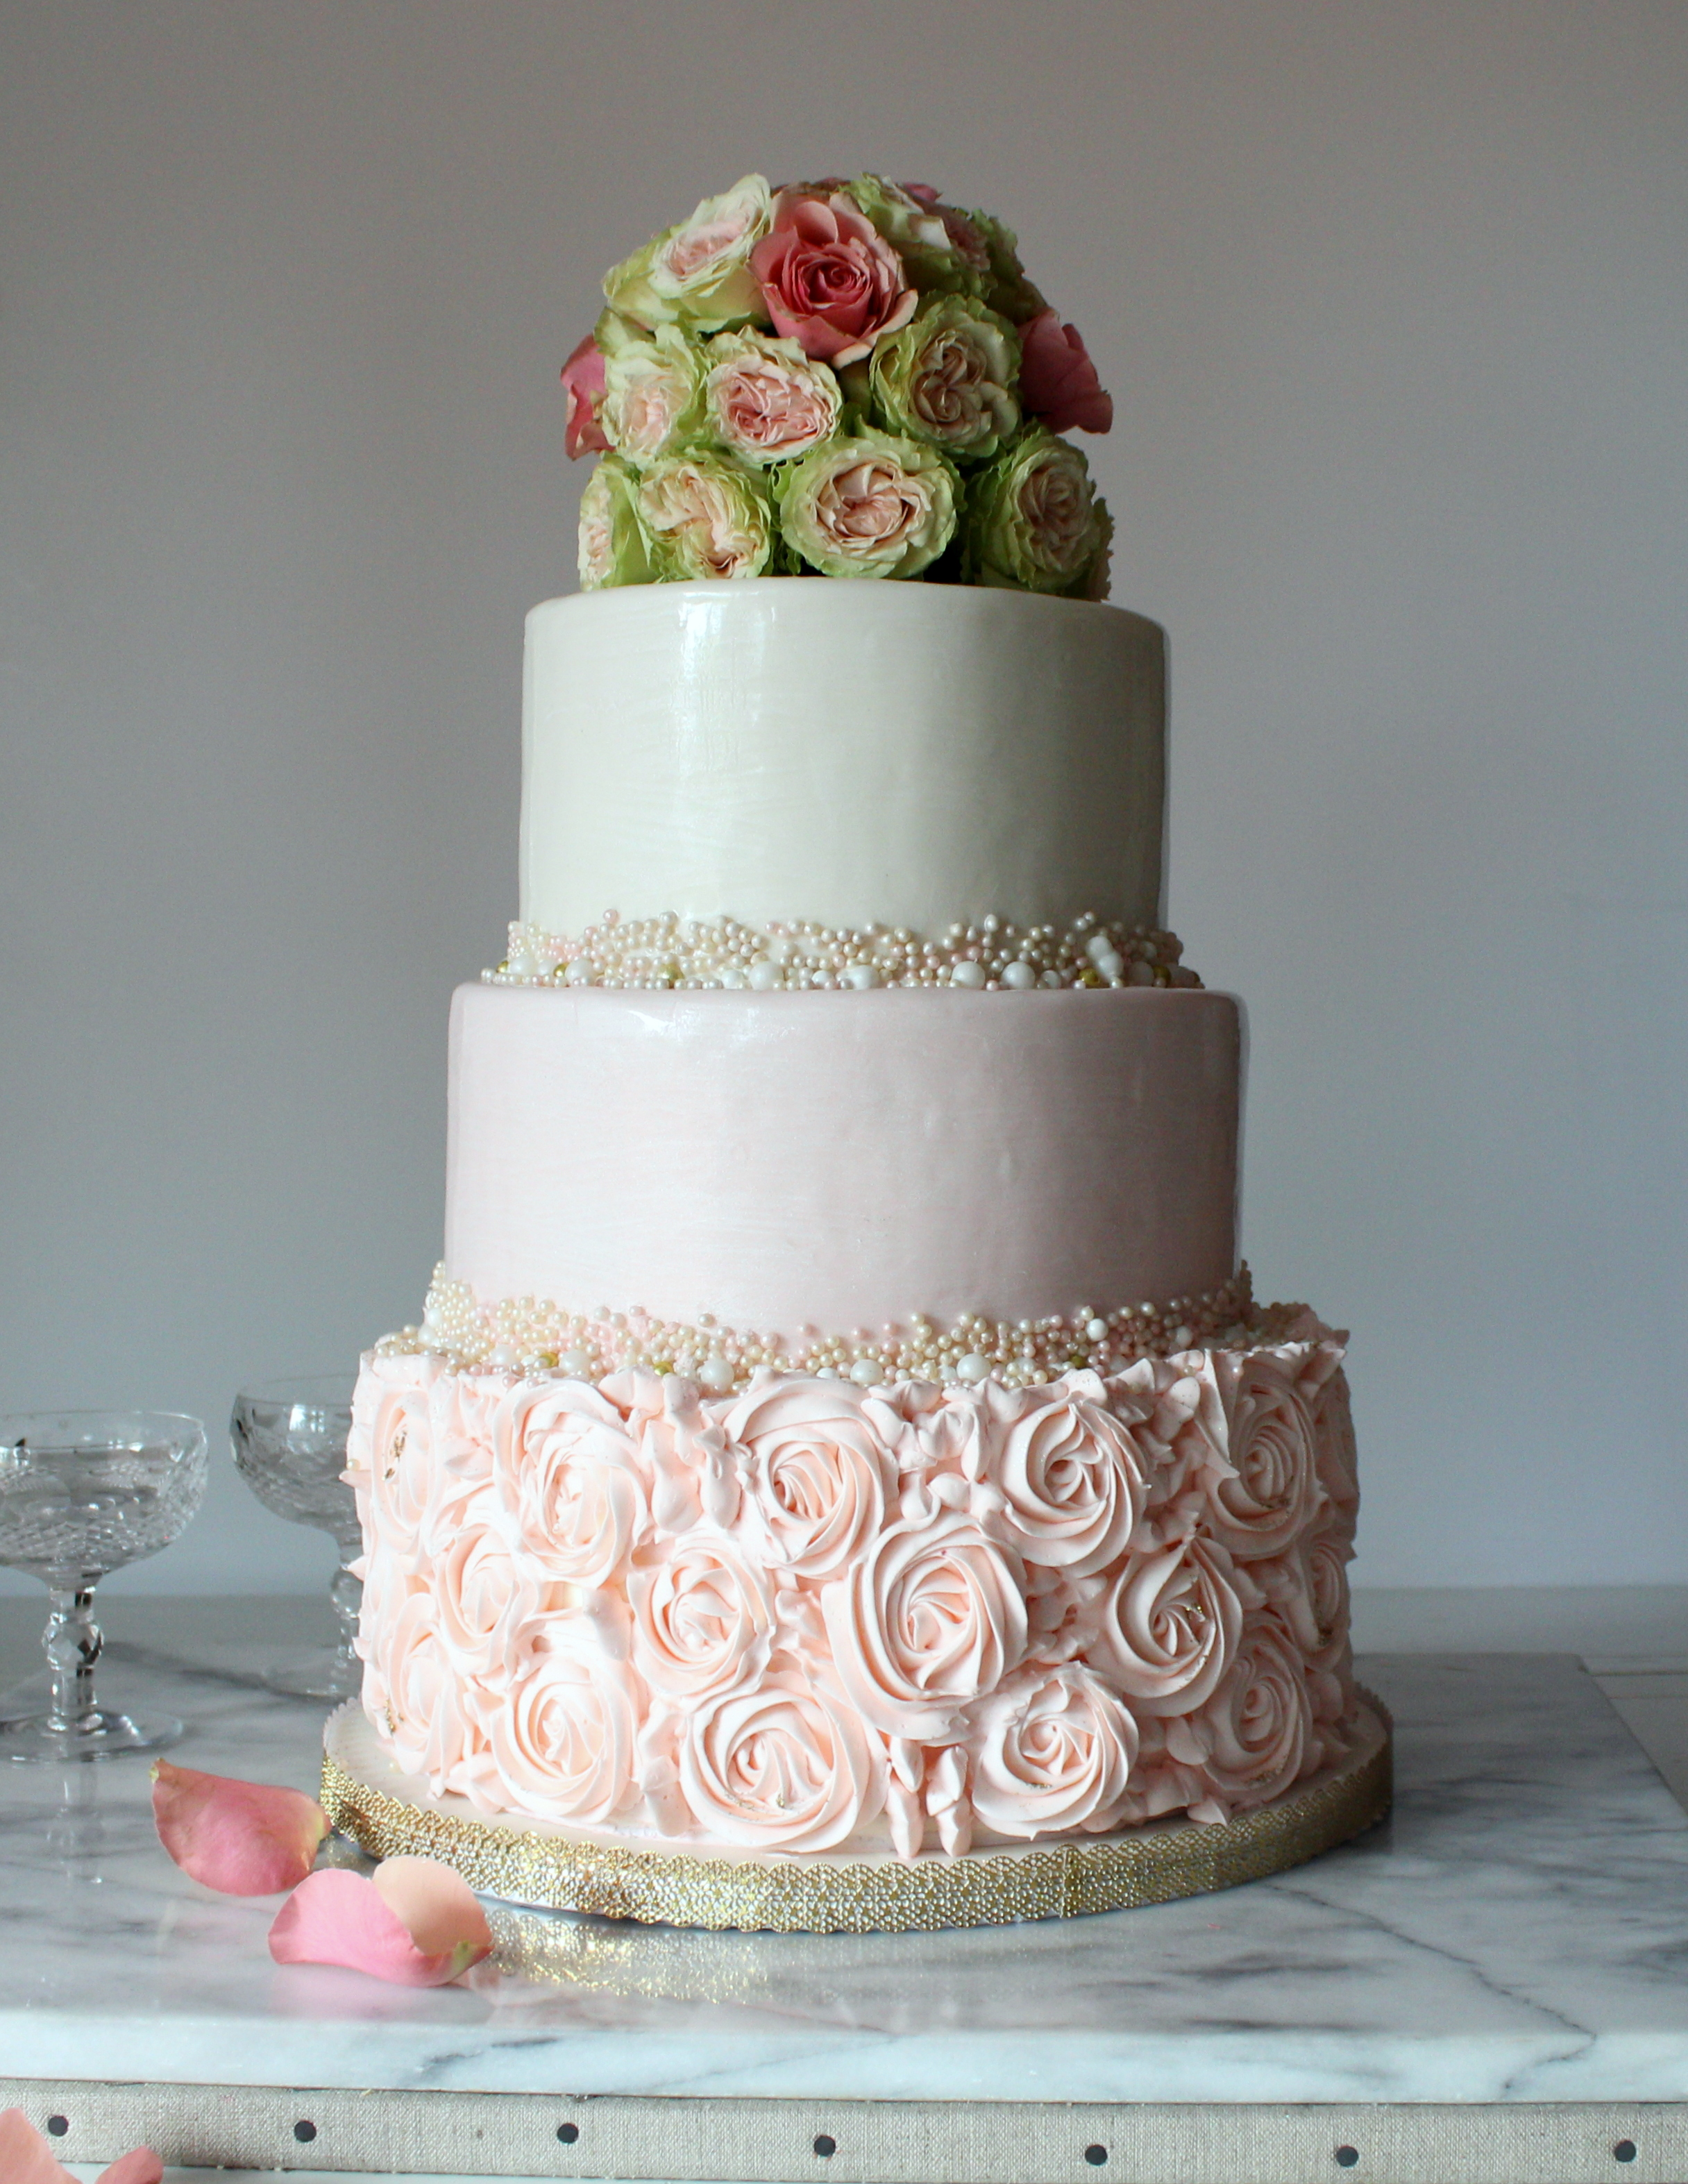 pink ombre wedding cake buttercream rosettes fresh roses pearl border.JPG